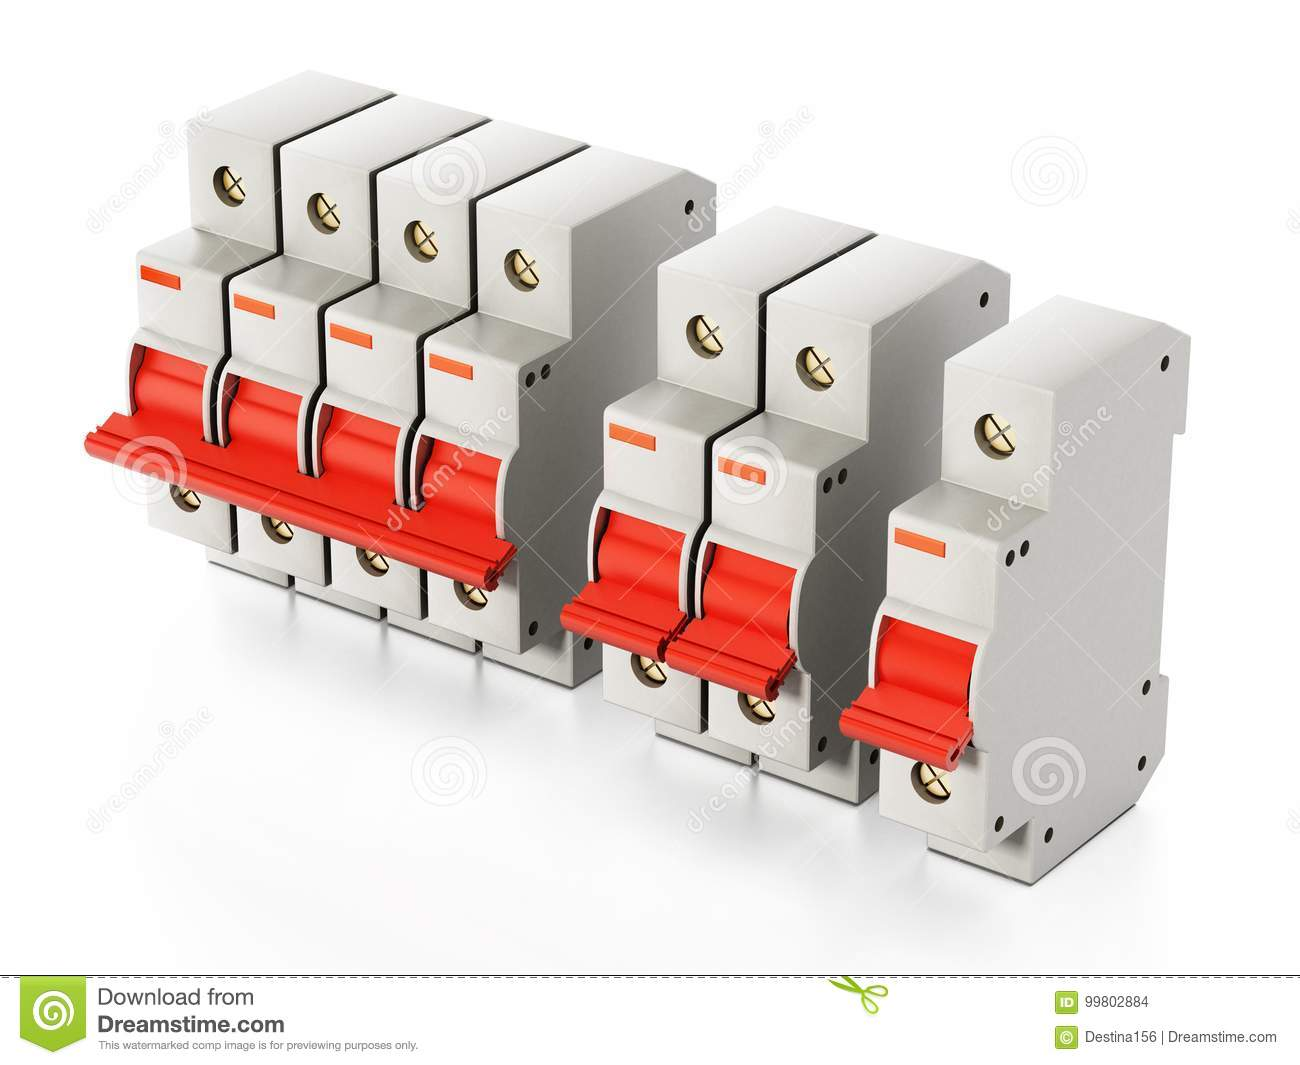 hight resolution of fuse box isolated on white background 3d illustration